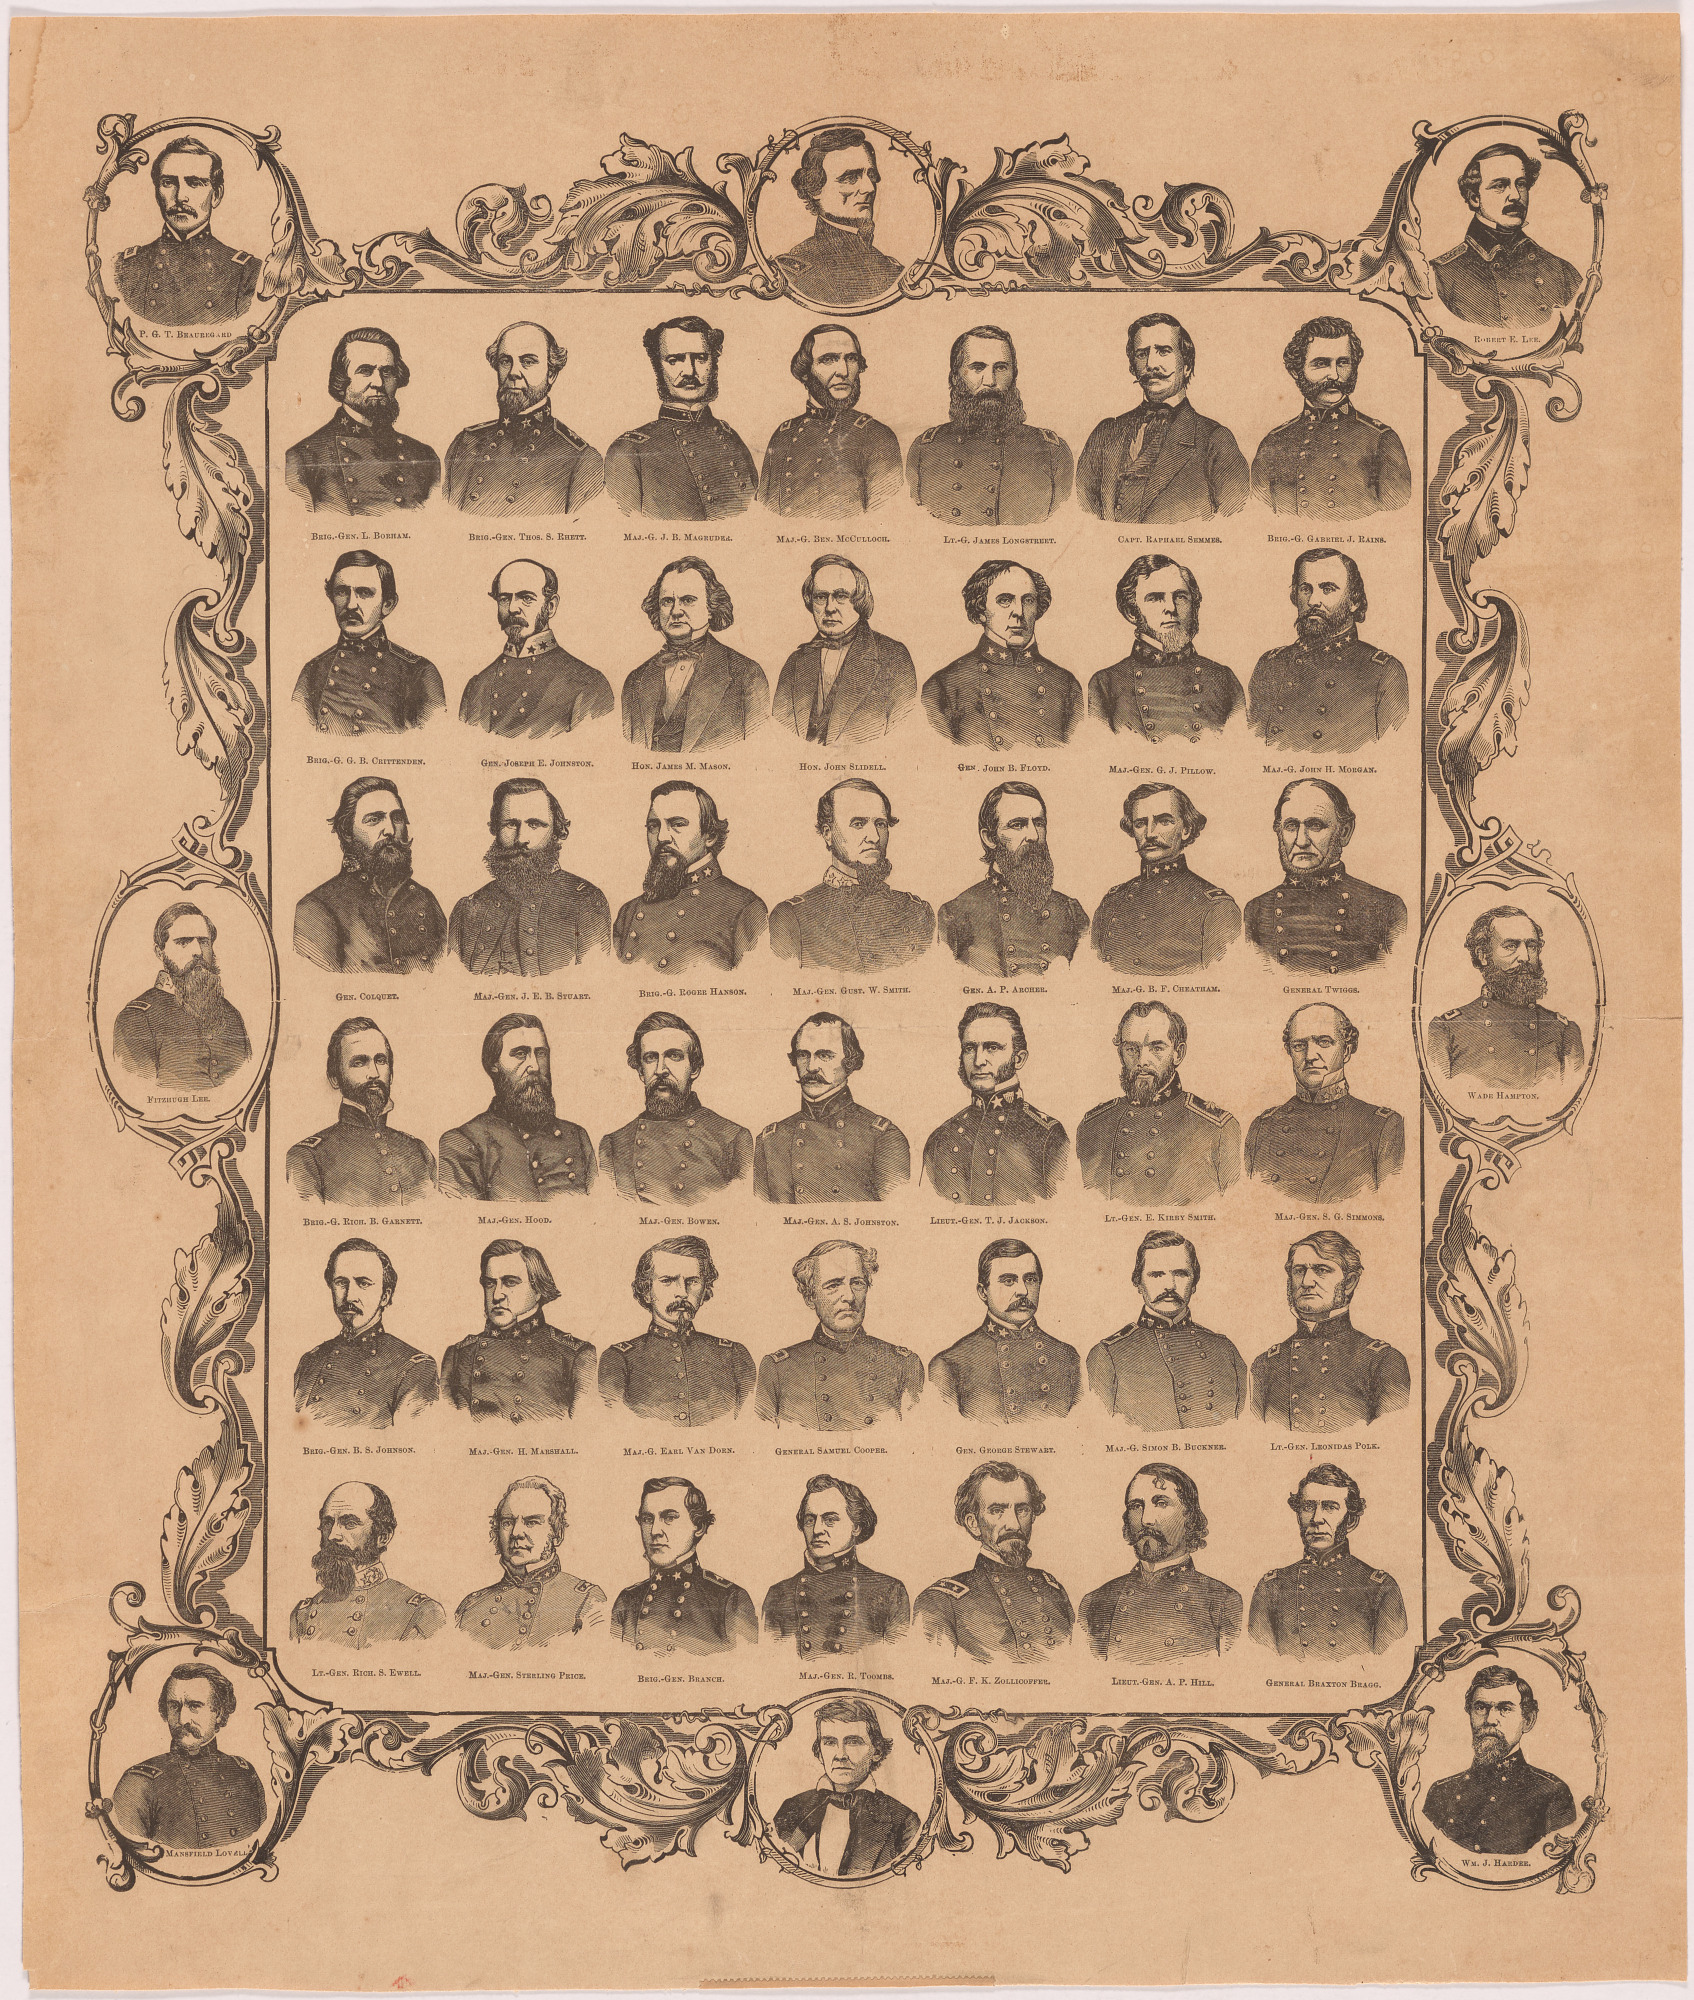 Statesmen and Generals, Confederacy